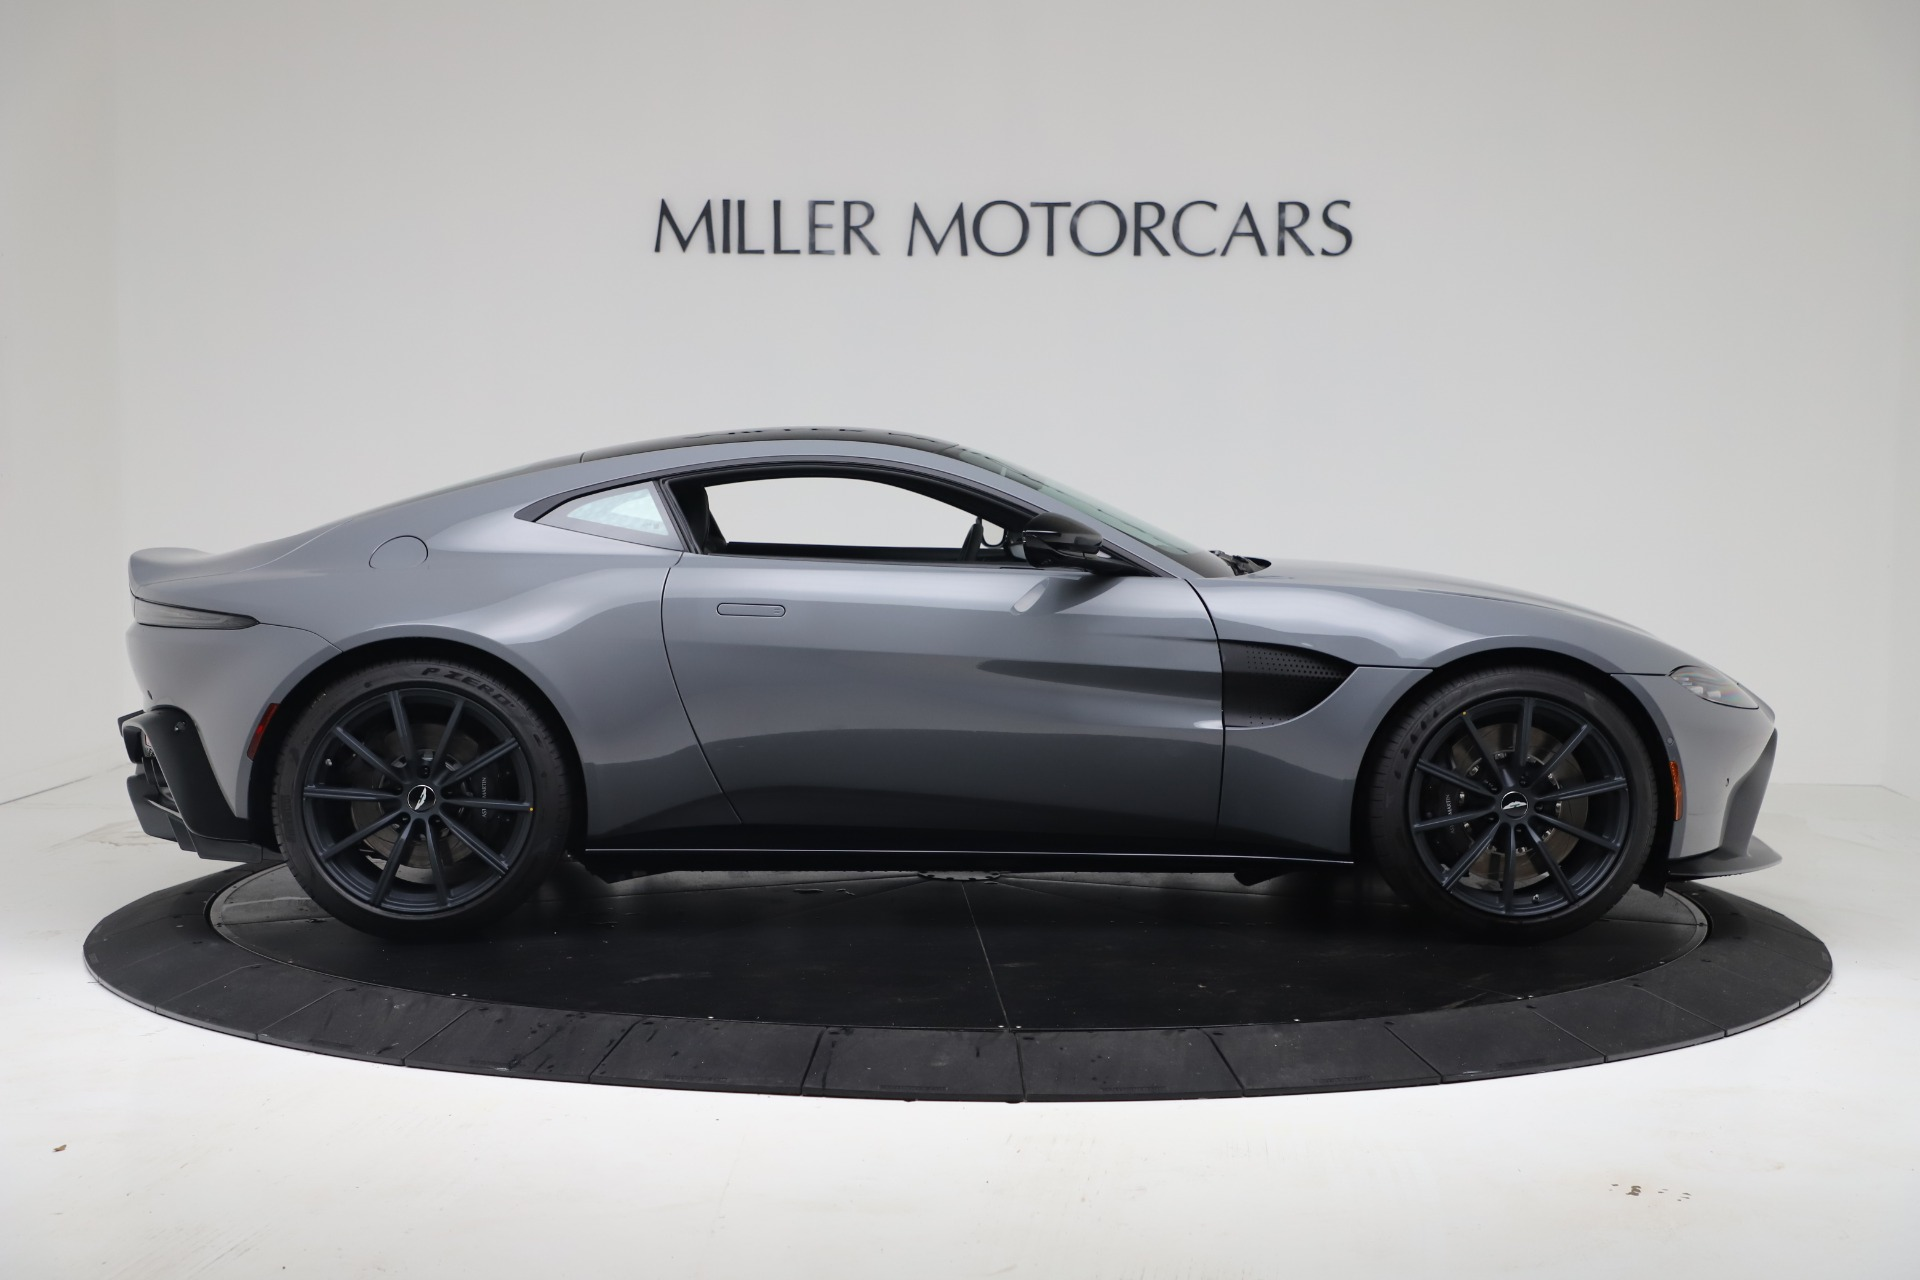 New 2020 Aston Martin Vantage V8 For Sale In Westport, CT 3482_p11